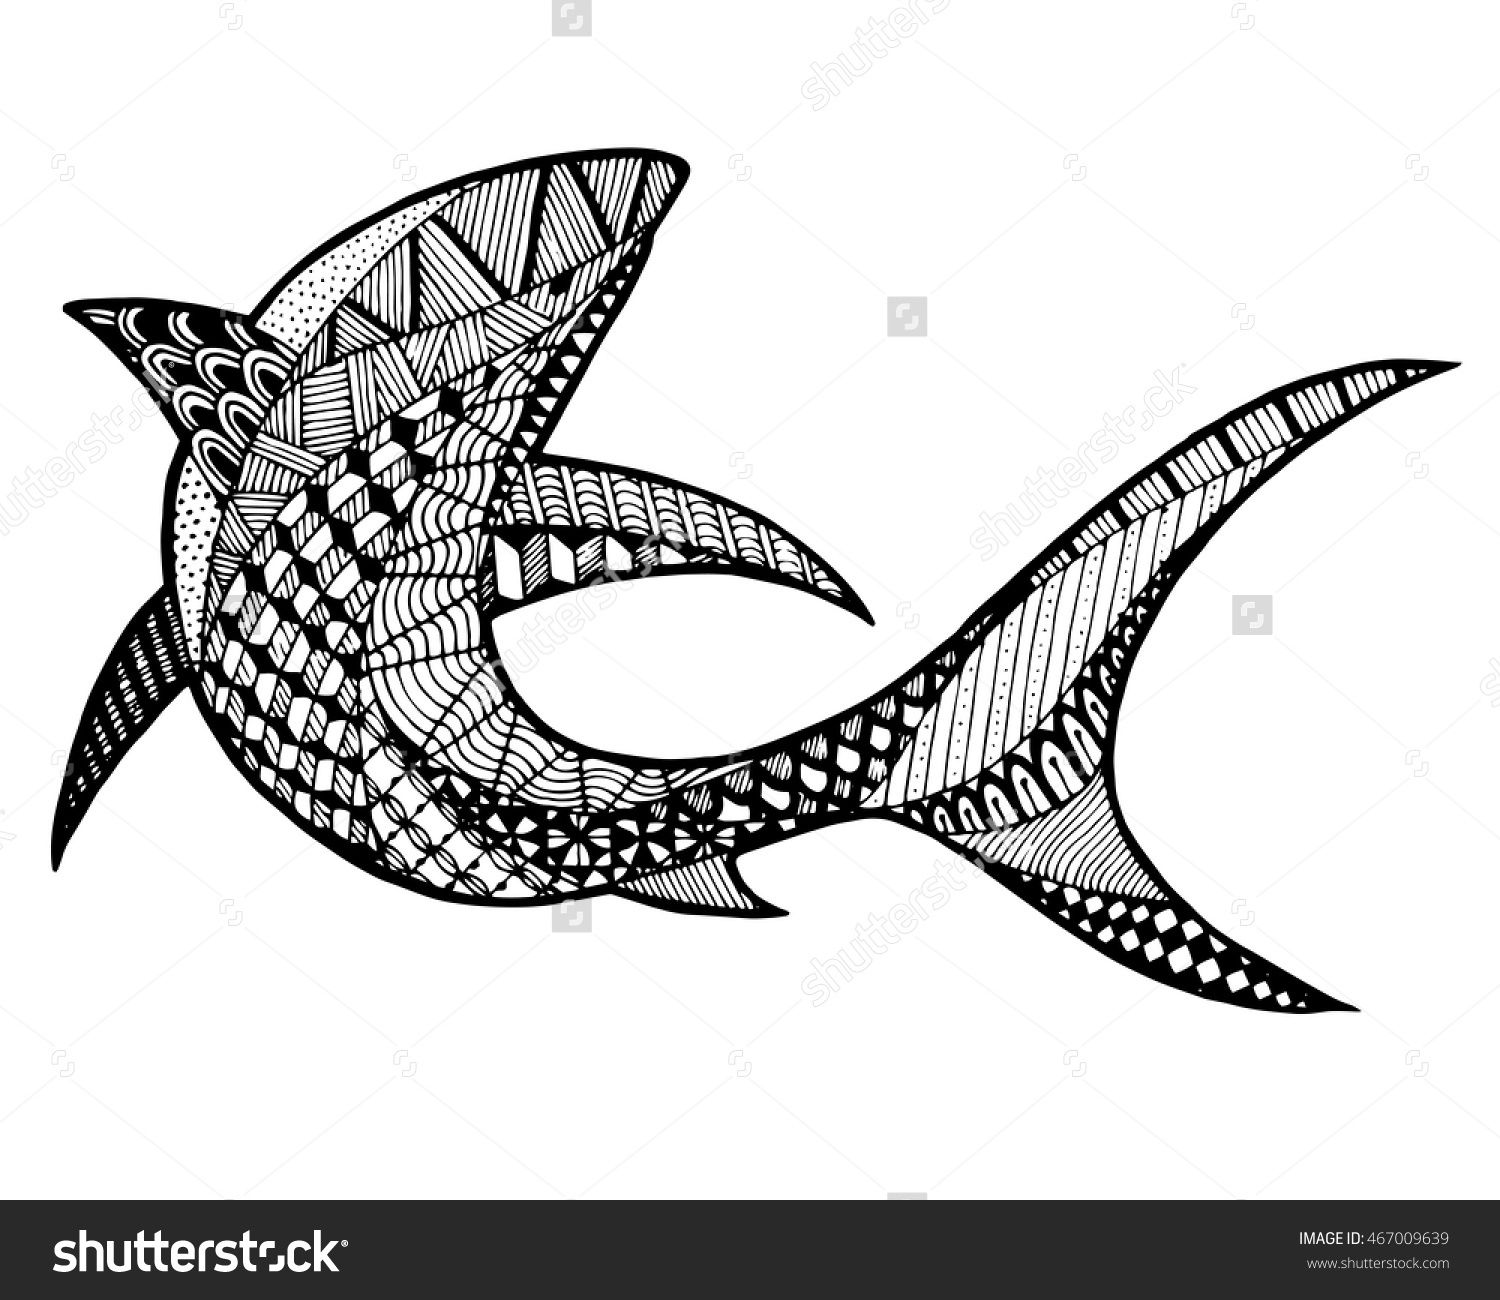 Zentangle Stylized Abstract Shark